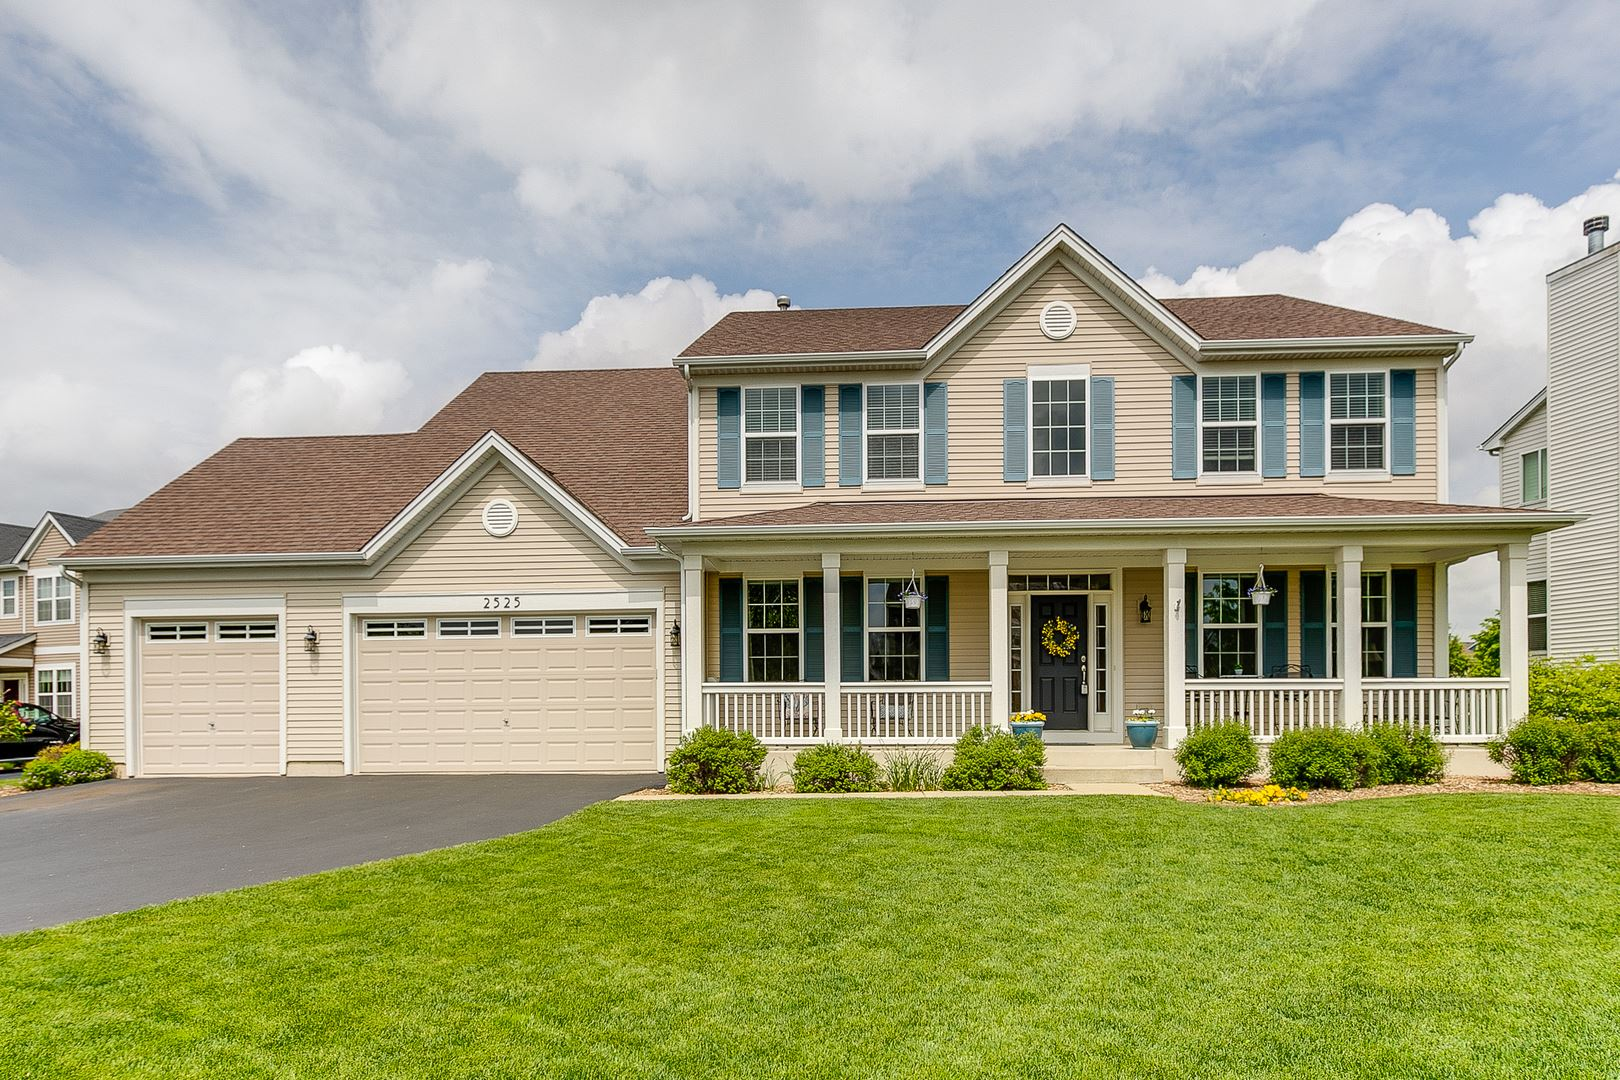 2525 Coneflower Court, Wauconda, IL 60084 - #: 10681333